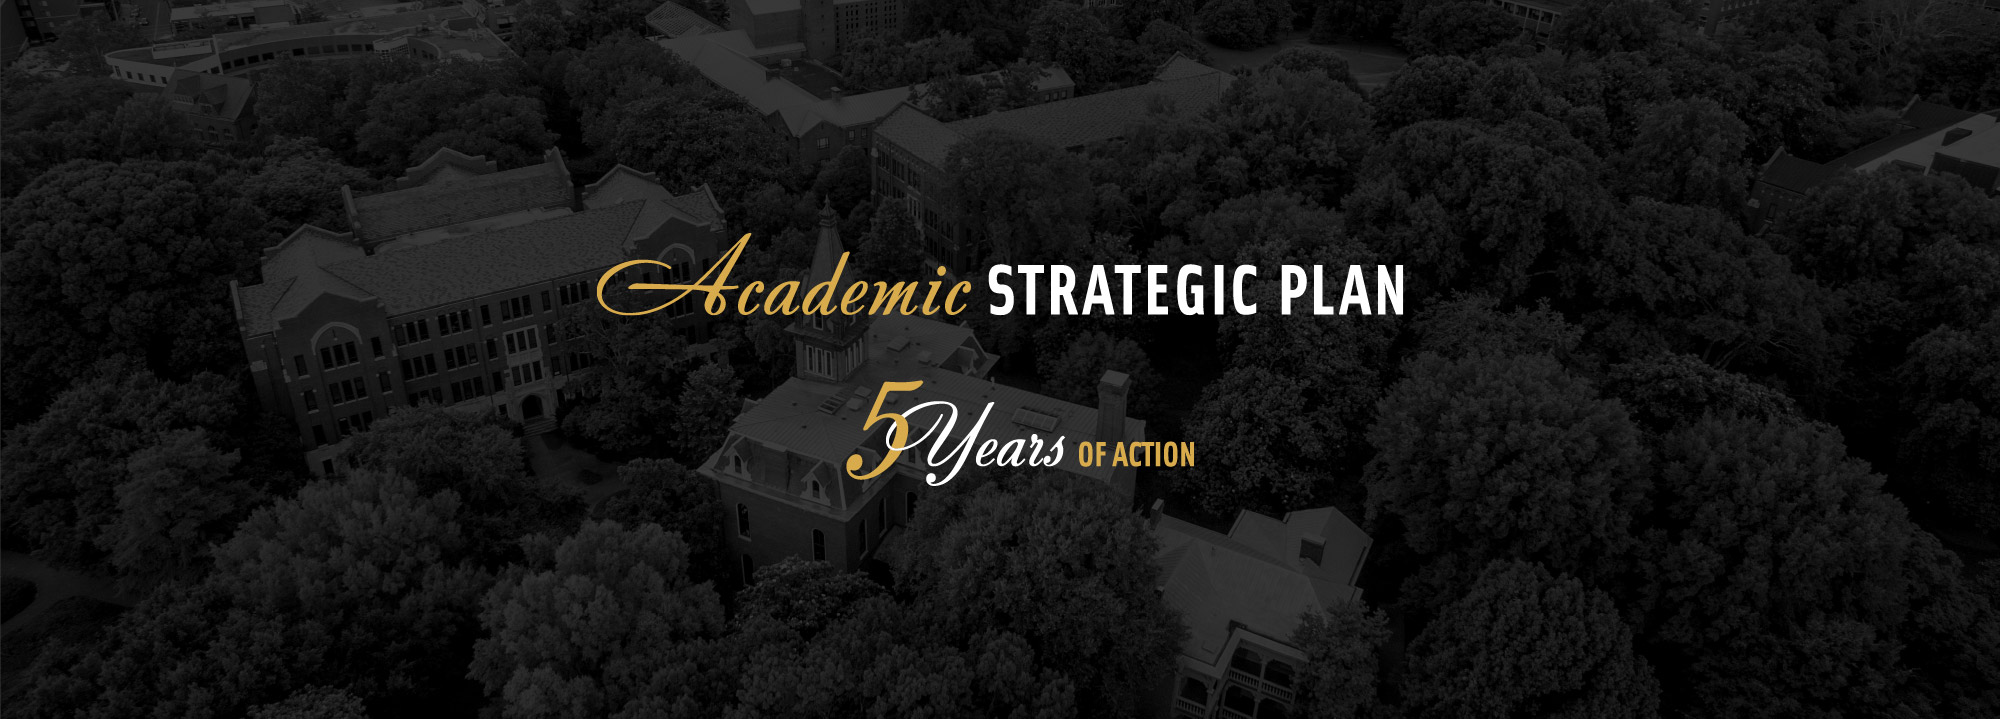 Academic Strategic Plan: Five Years of Action